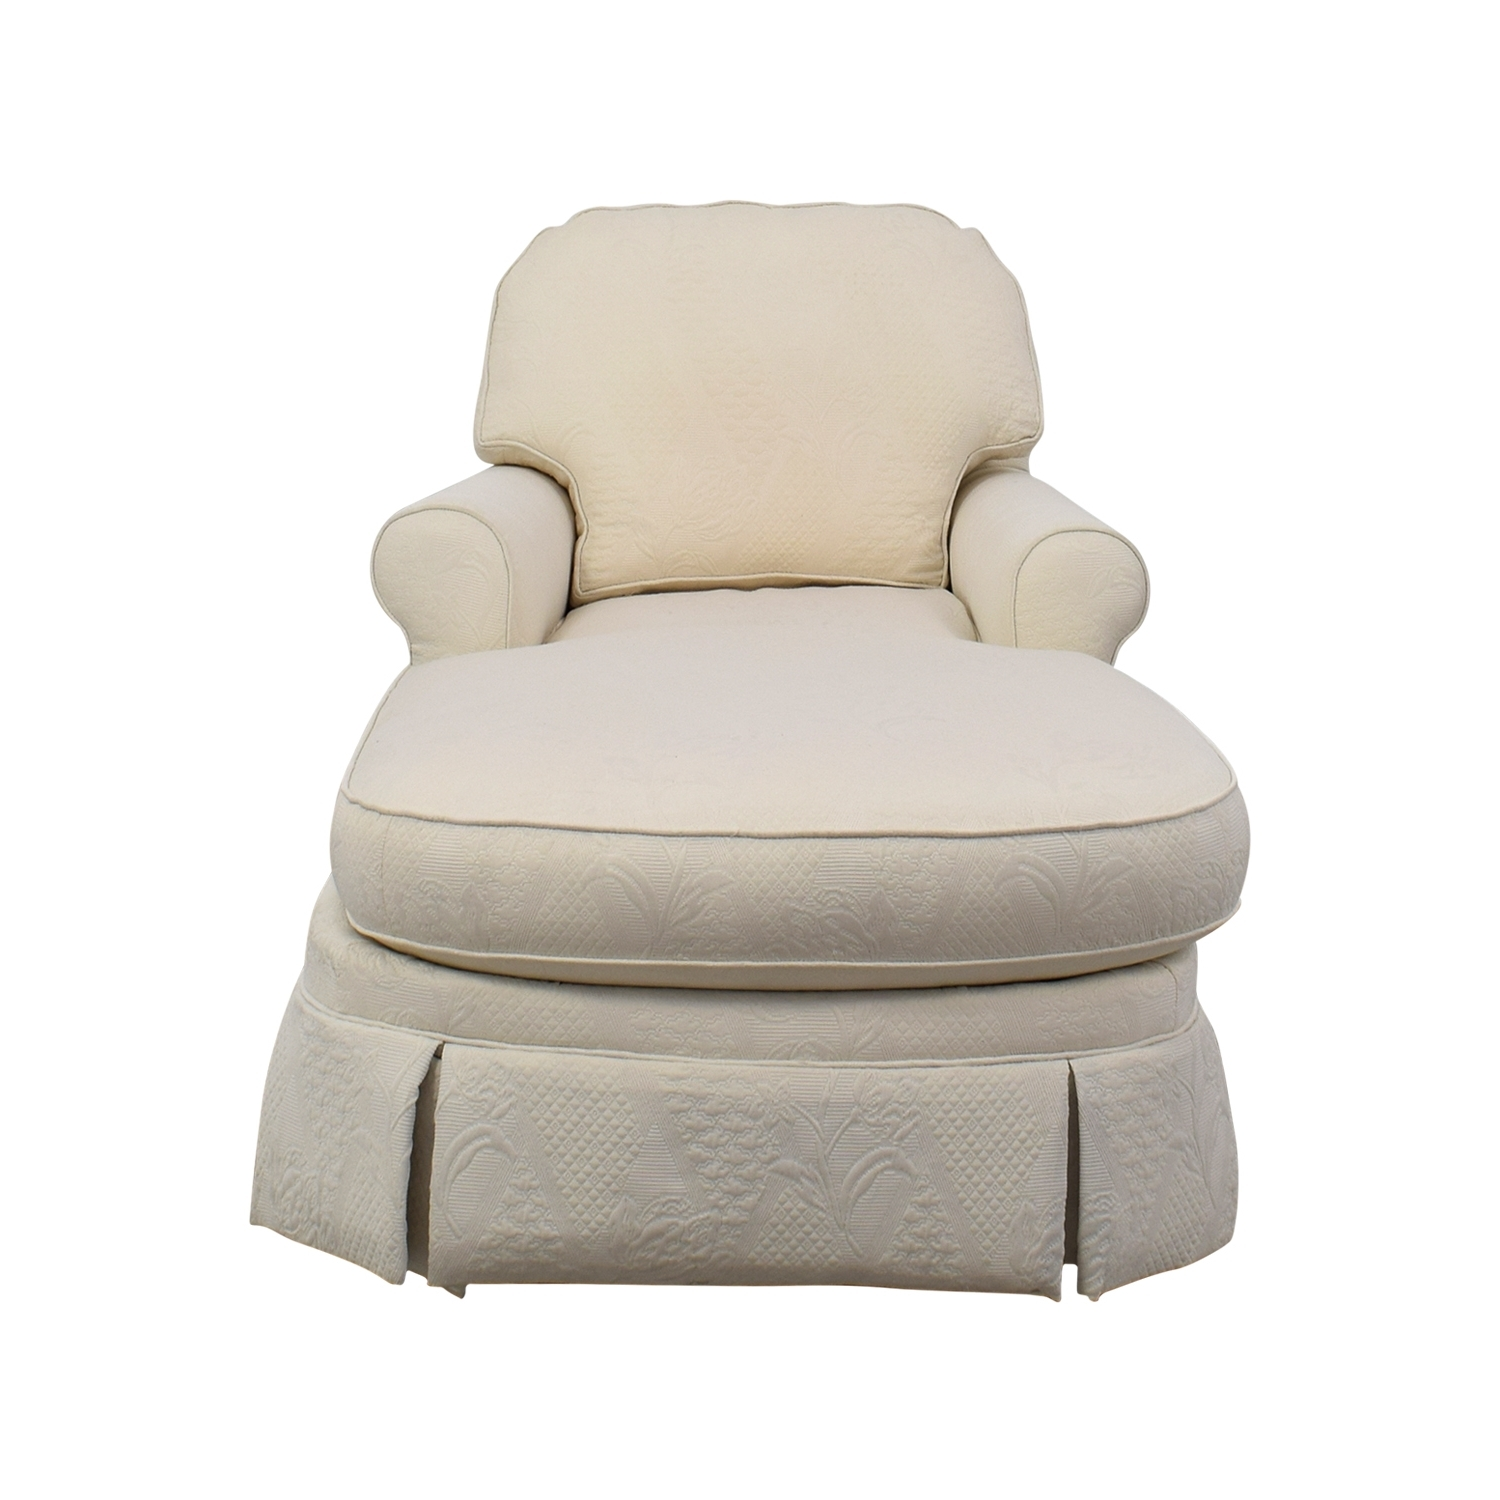 [%85% Off – Ethan Allen Ethan Allen Victoria White Chaise Lounge / Sofas In 2018 White Chaises|White Chaises Inside Latest 85% Off – Ethan Allen Ethan Allen Victoria White Chaise Lounge / Sofas|Most Popular White Chaises Within 85% Off – Ethan Allen Ethan Allen Victoria White Chaise Lounge / Sofas|Popular 85% Off – Ethan Allen Ethan Allen Victoria White Chaise Lounge / Sofas Intended For White Chaises%] (View 1 of 15)